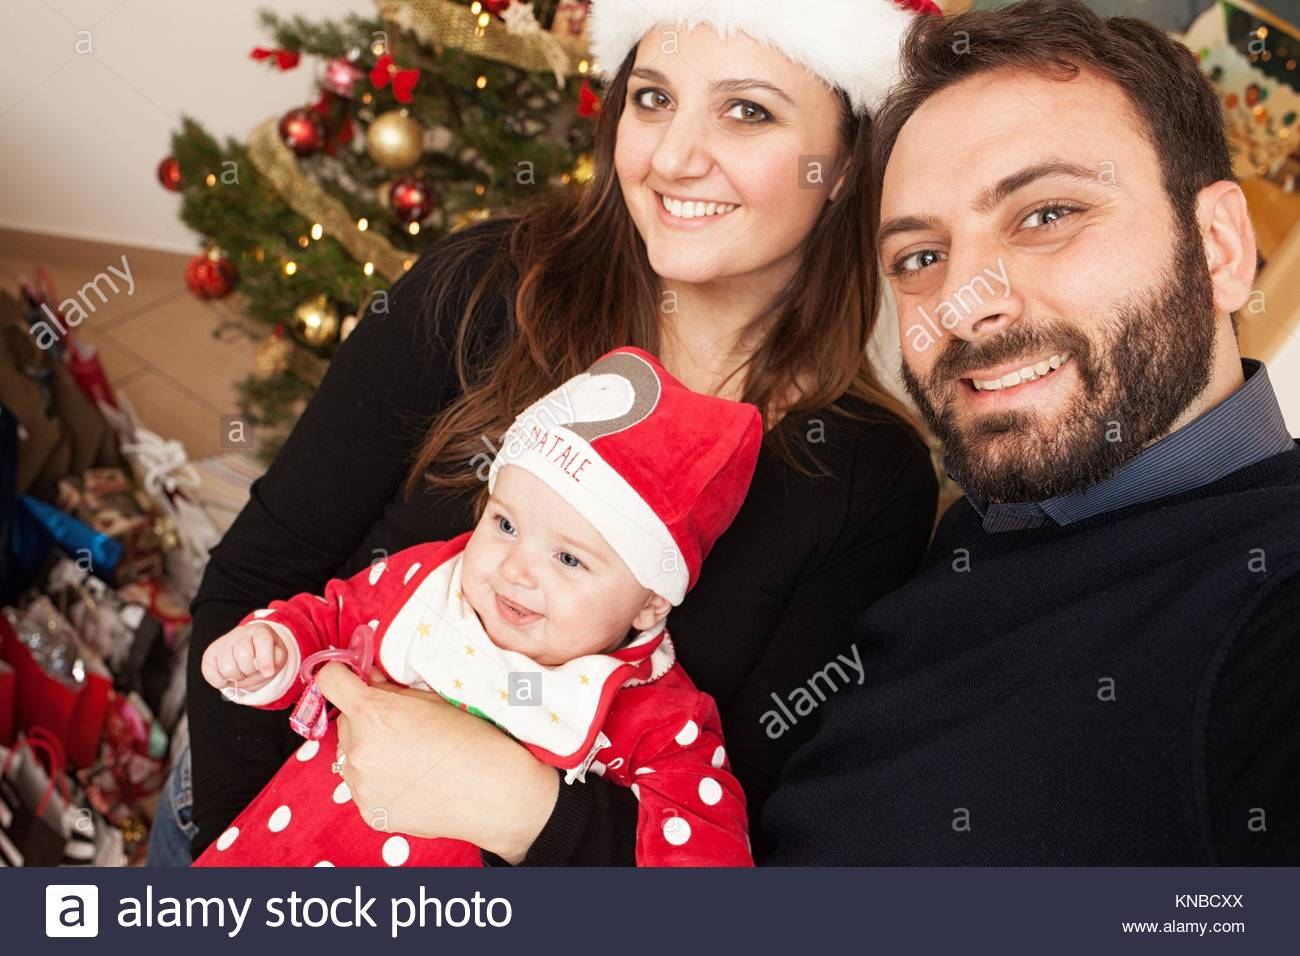 Selfie of newborn baby girl, with Christmas suit and his mom and daddy. - Stock Image